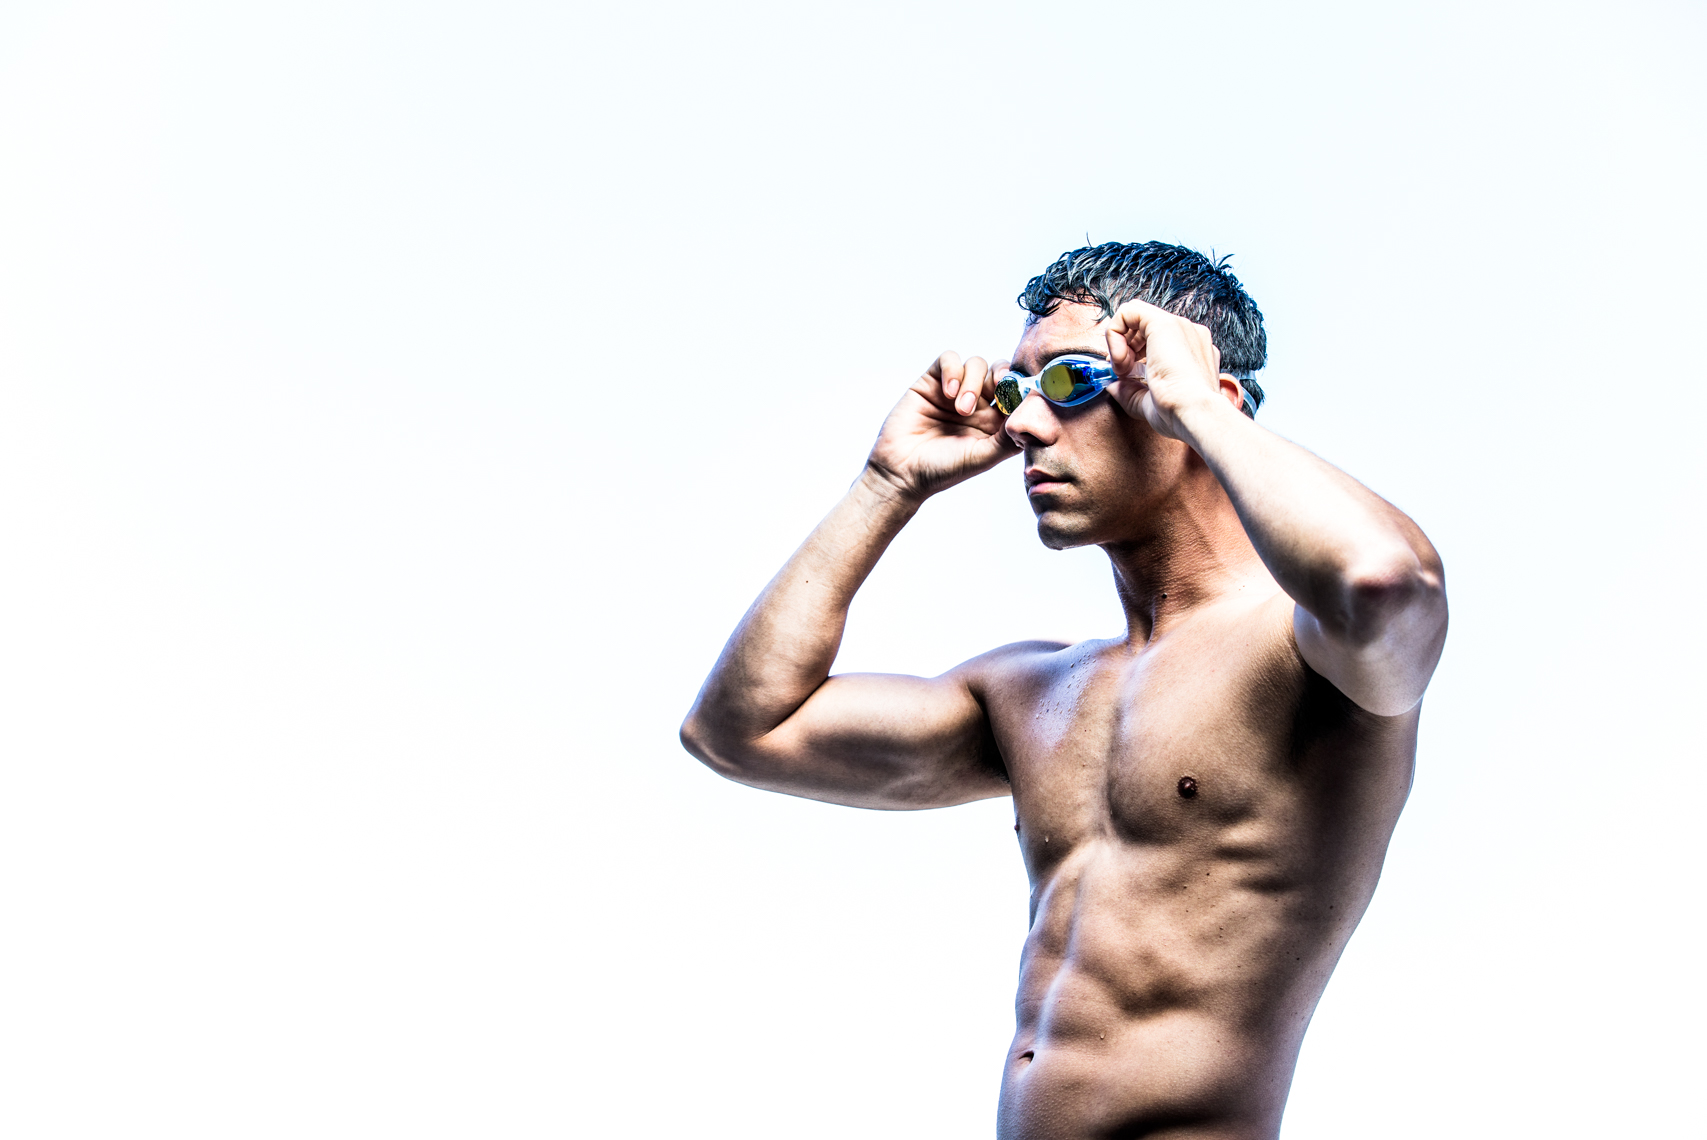 Robert Houser Photography | Fitness